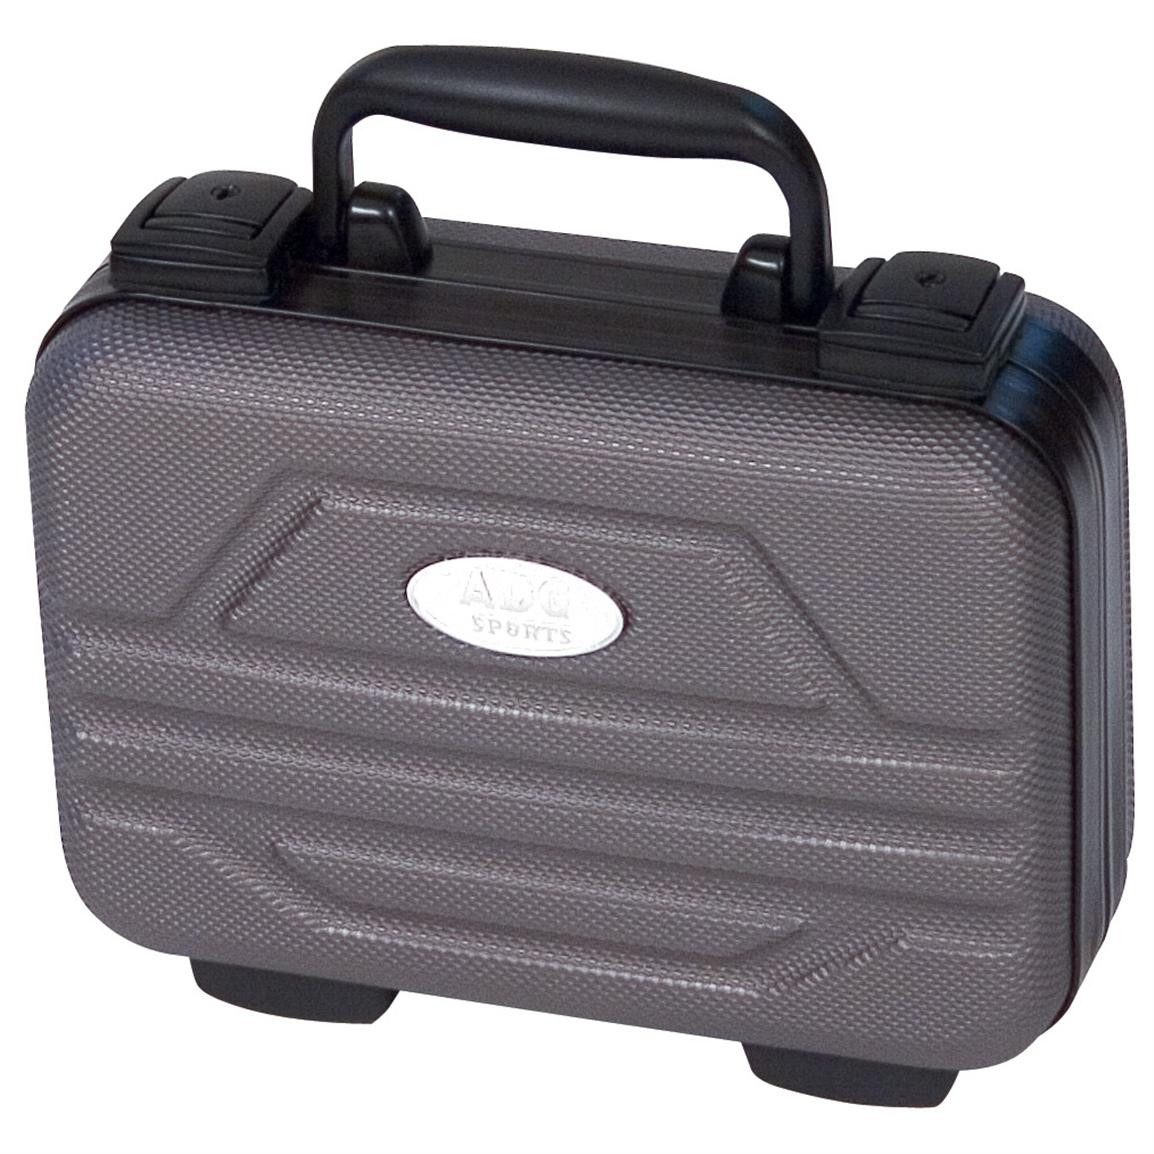 ADG Sports™ Silverside Single-Pistol Case